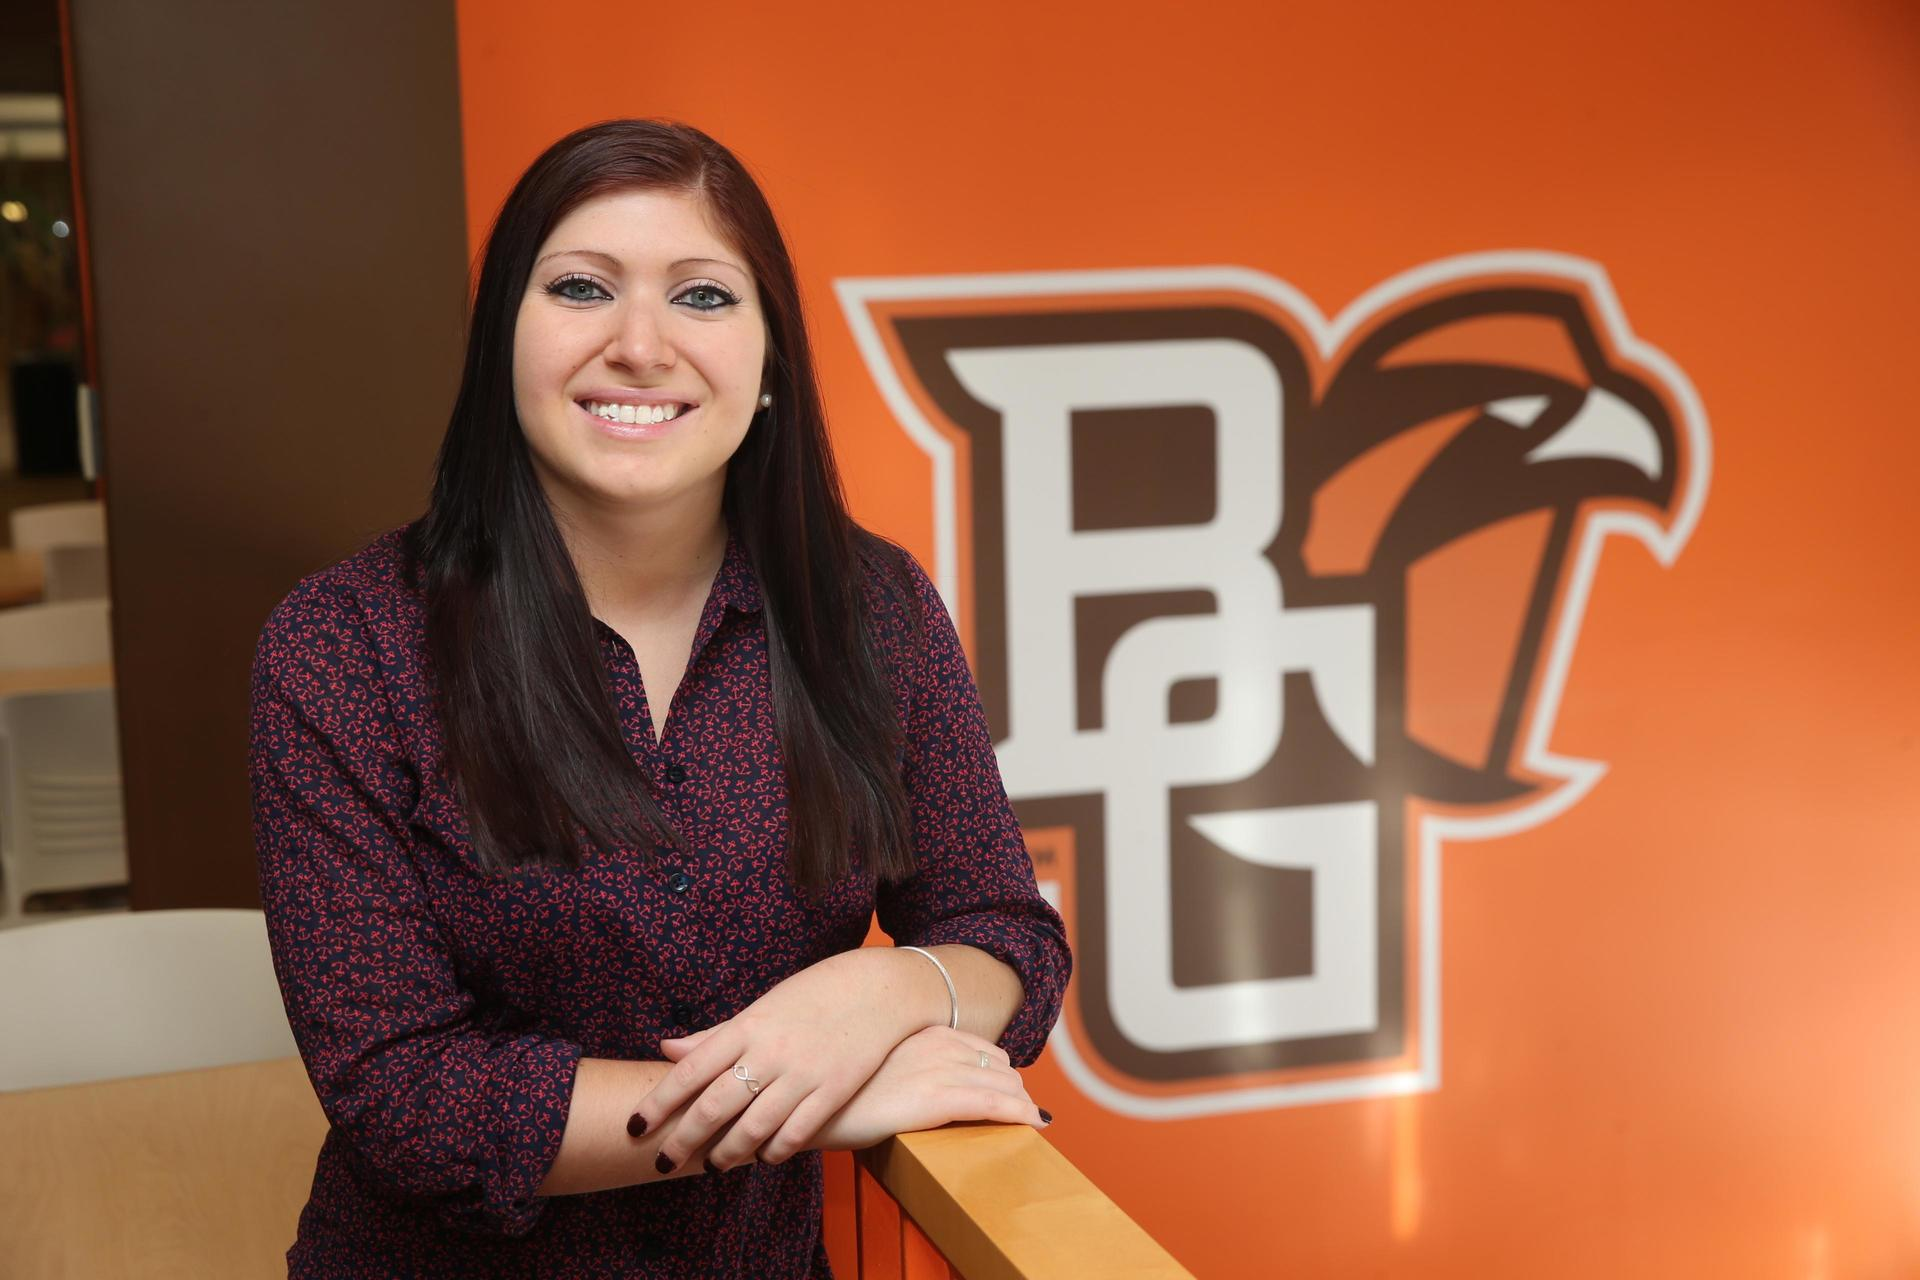 Veterans at BGSU can choose from over 75 graduate programs, some fully online, all welcoming to those who served.